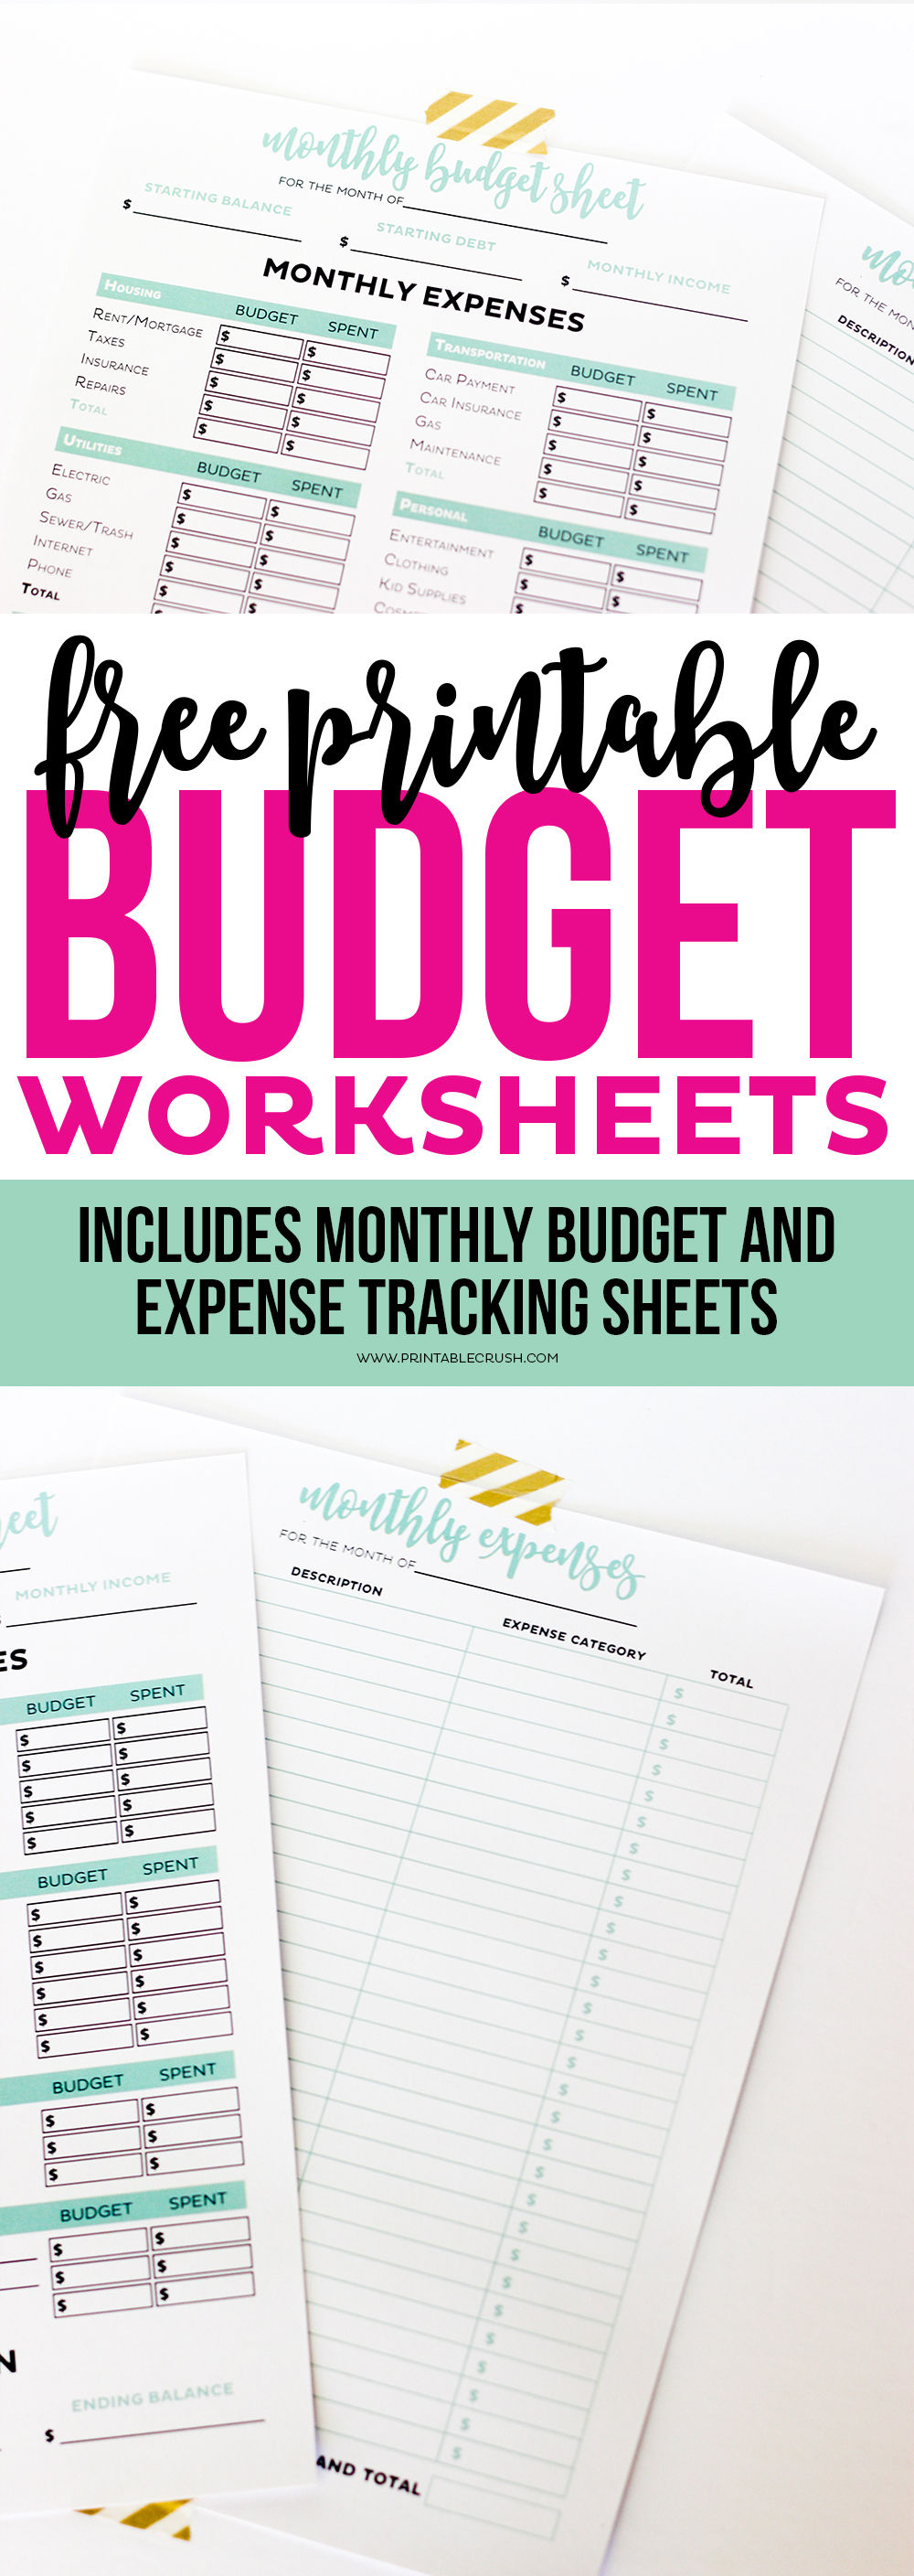 get your finances in order with these simple printable budget worksheets includes monthly budget and